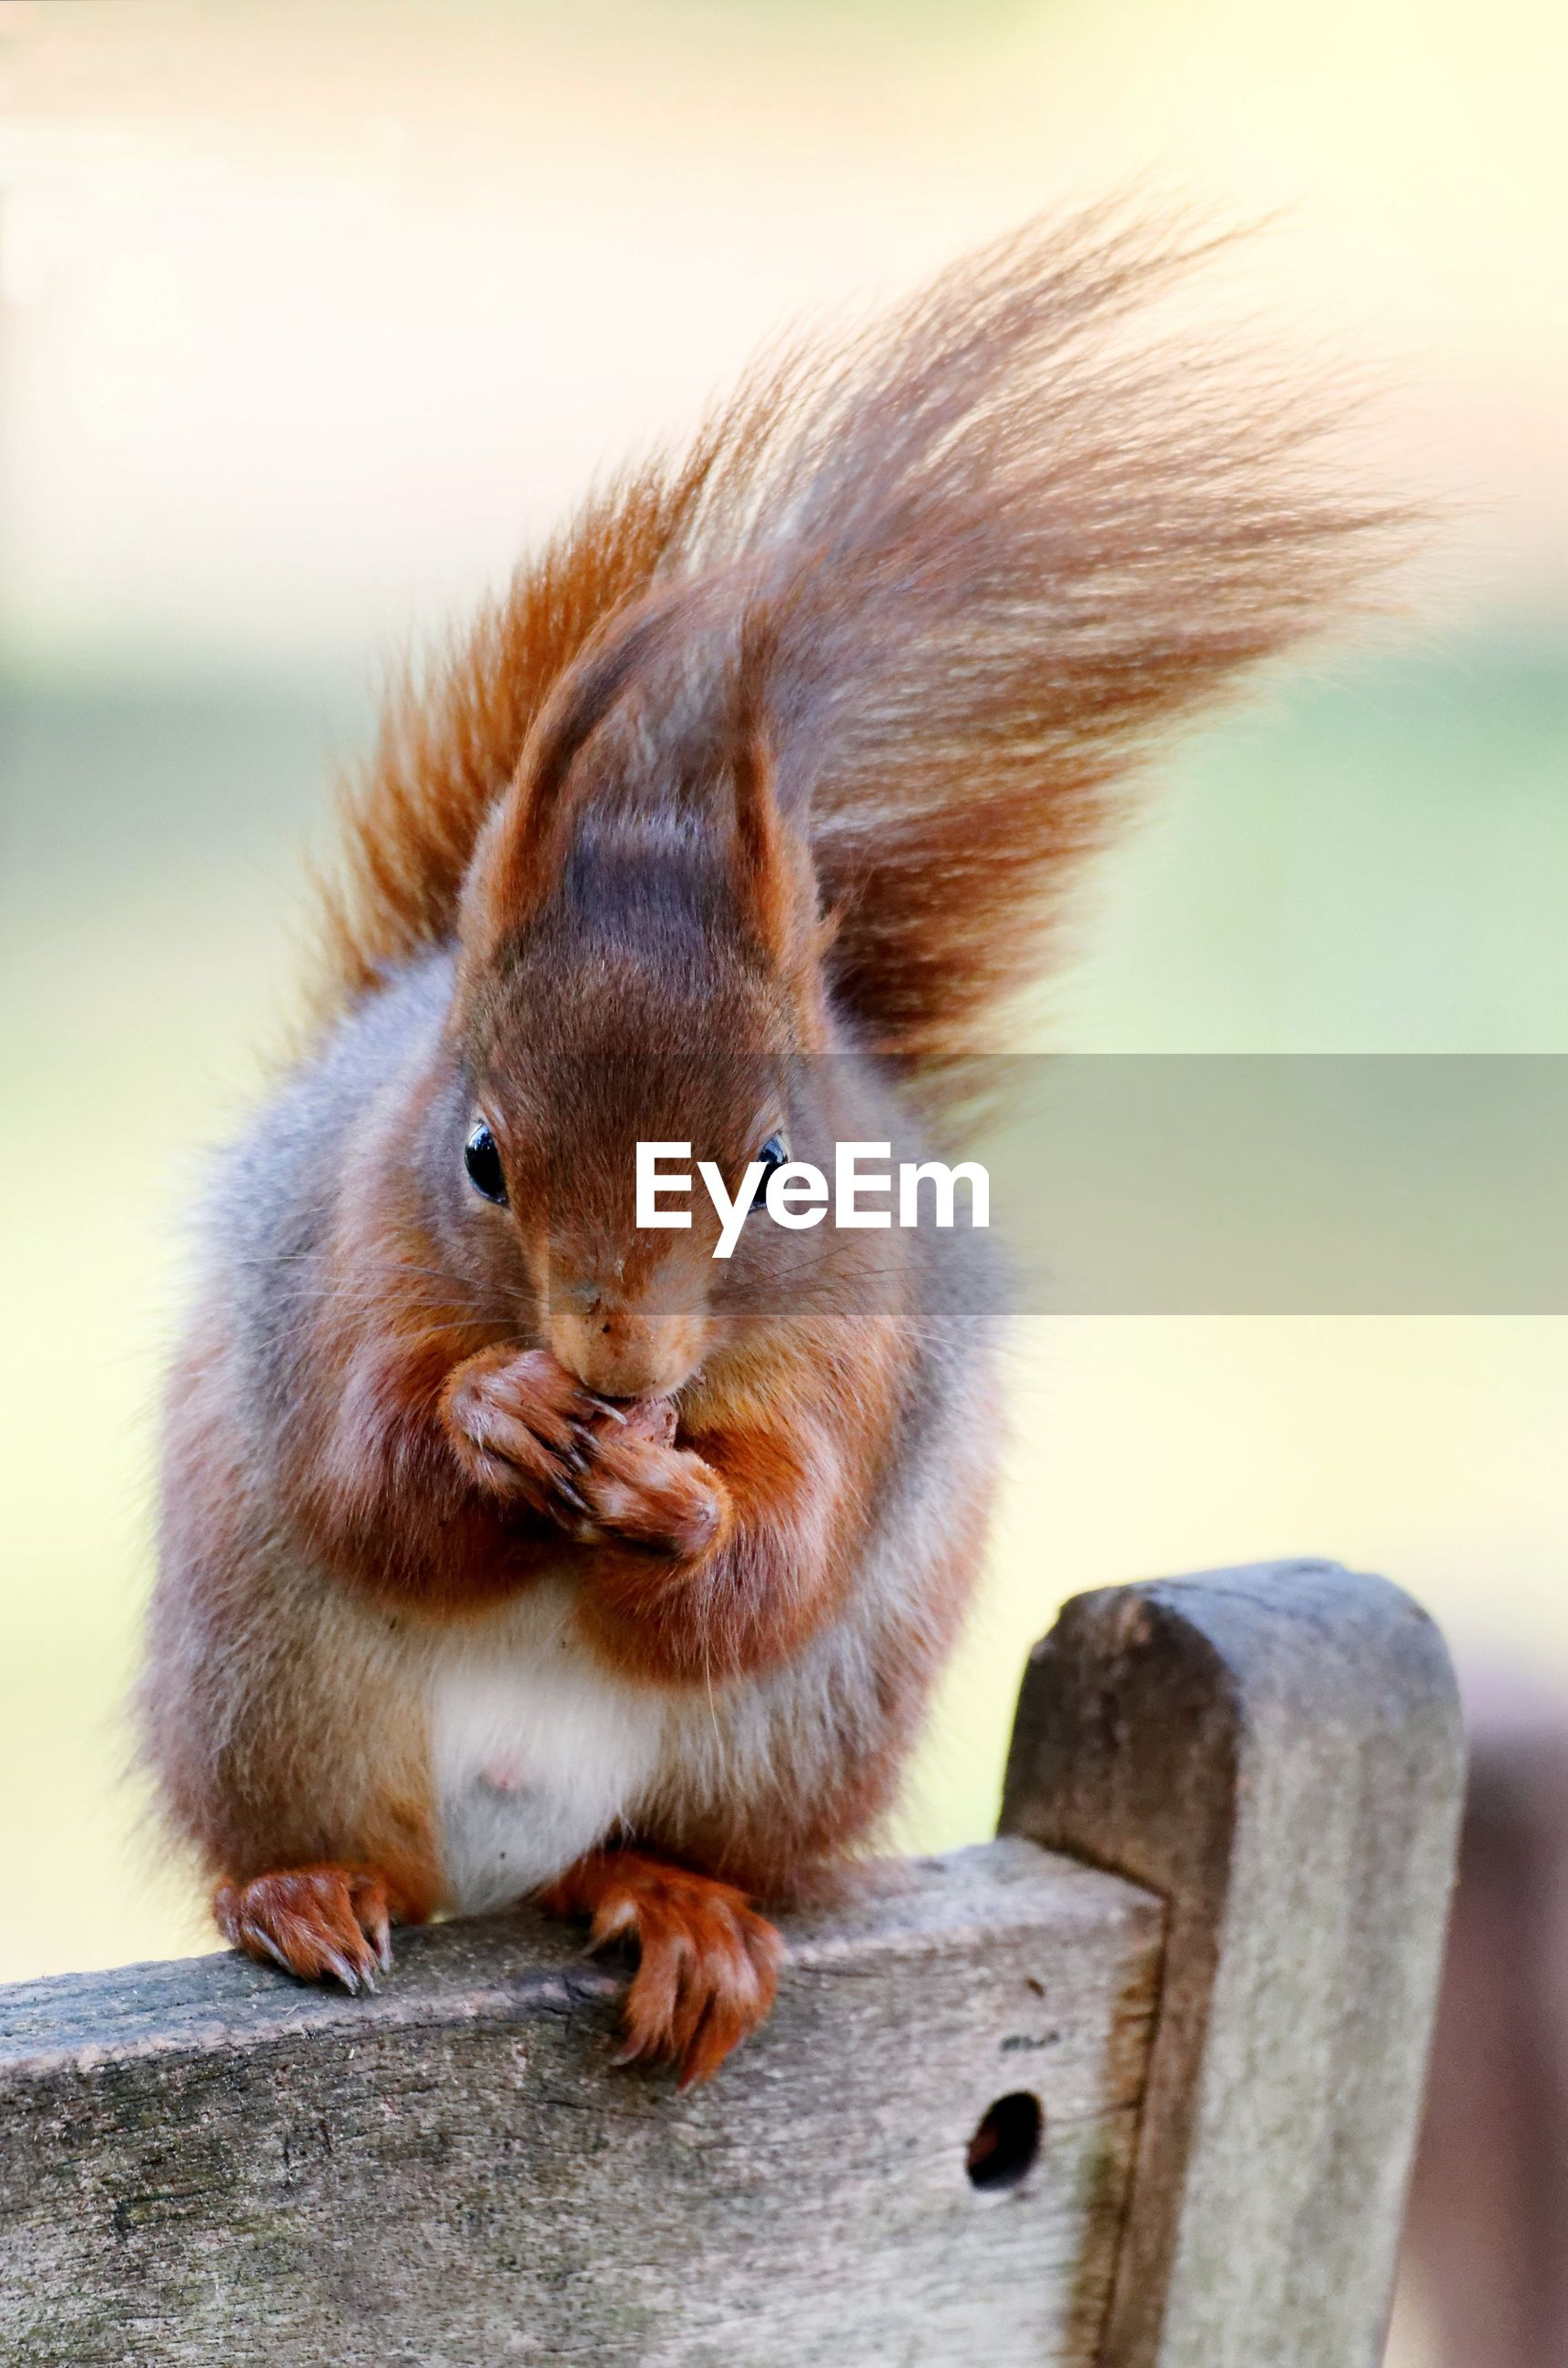 A squirrel sits on a wooden chair back on a windy day and eats a nut